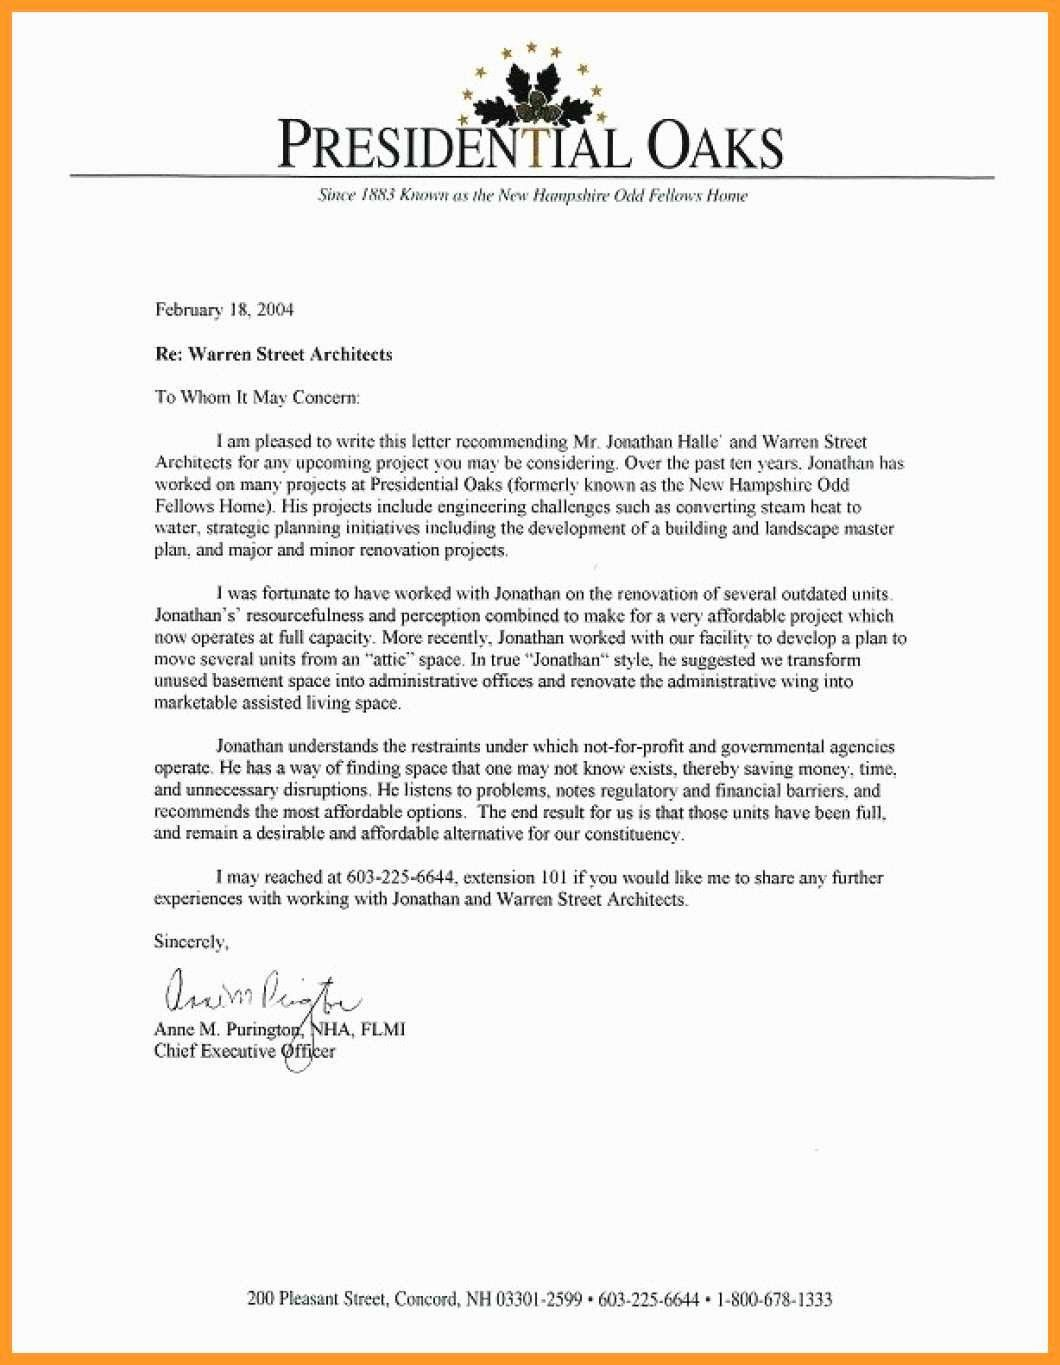 Personal Reference Letter For Coop : personal, reference, letter, Personal, Reference, Letter, Apartment, Letter,, Lettering